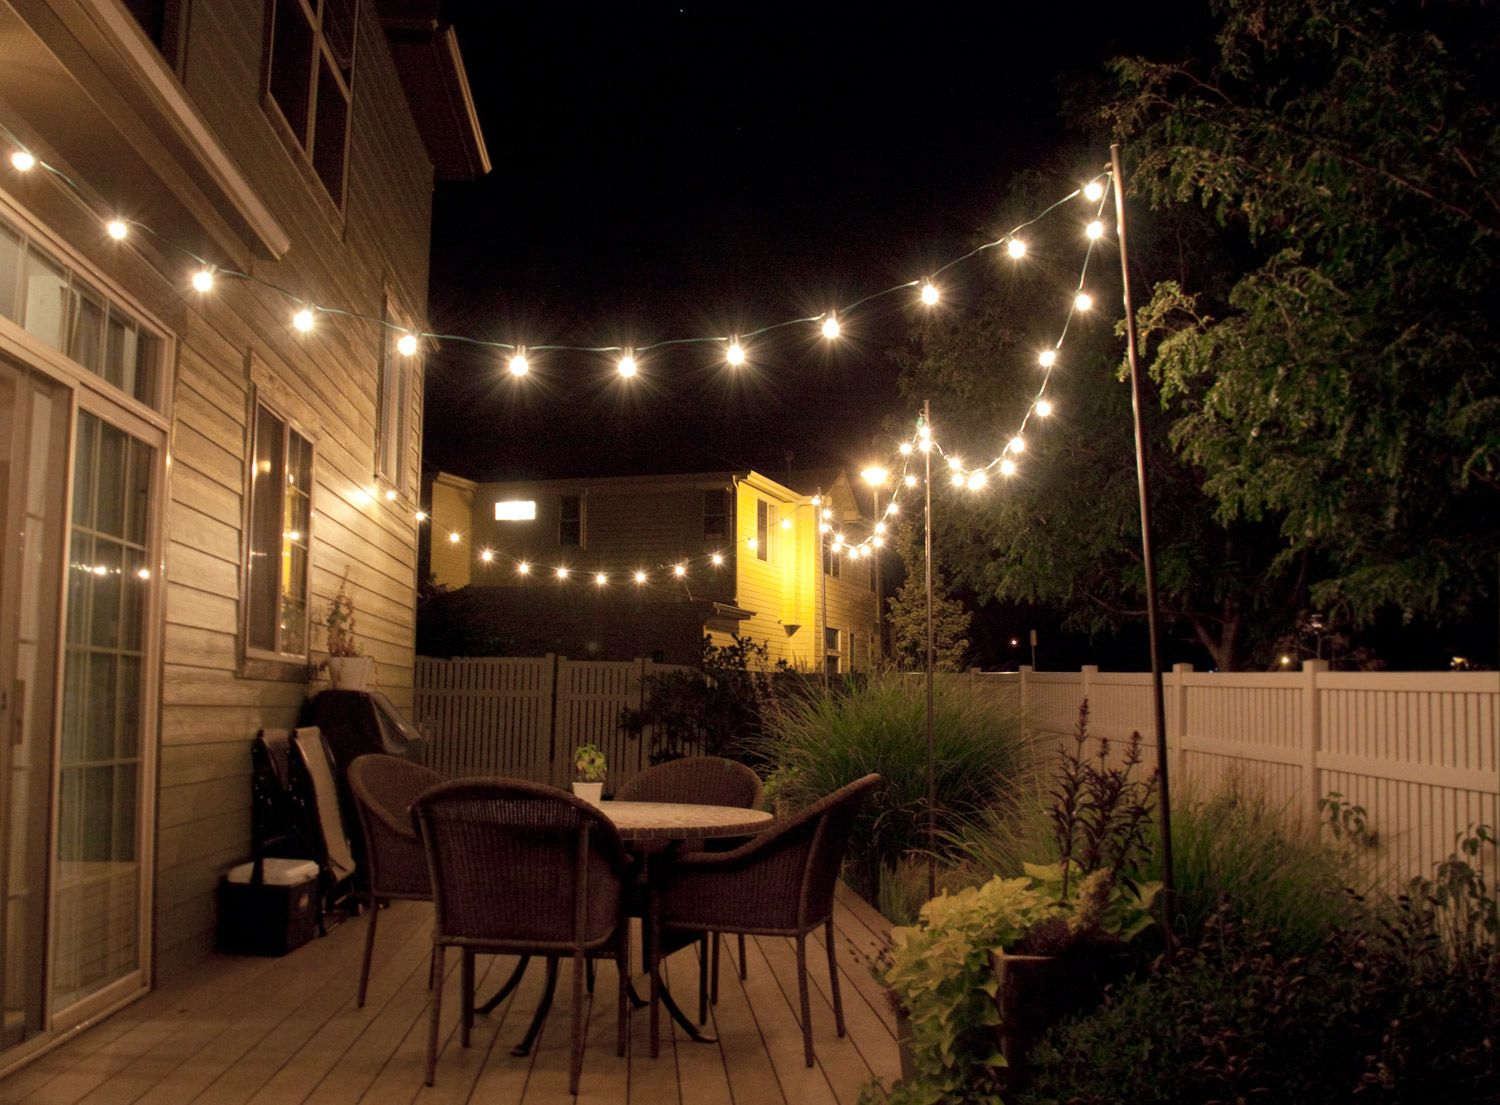 String Patio Lights Brilliant How To Make Inexpensive Poles To Hang String Lights On  Café Style